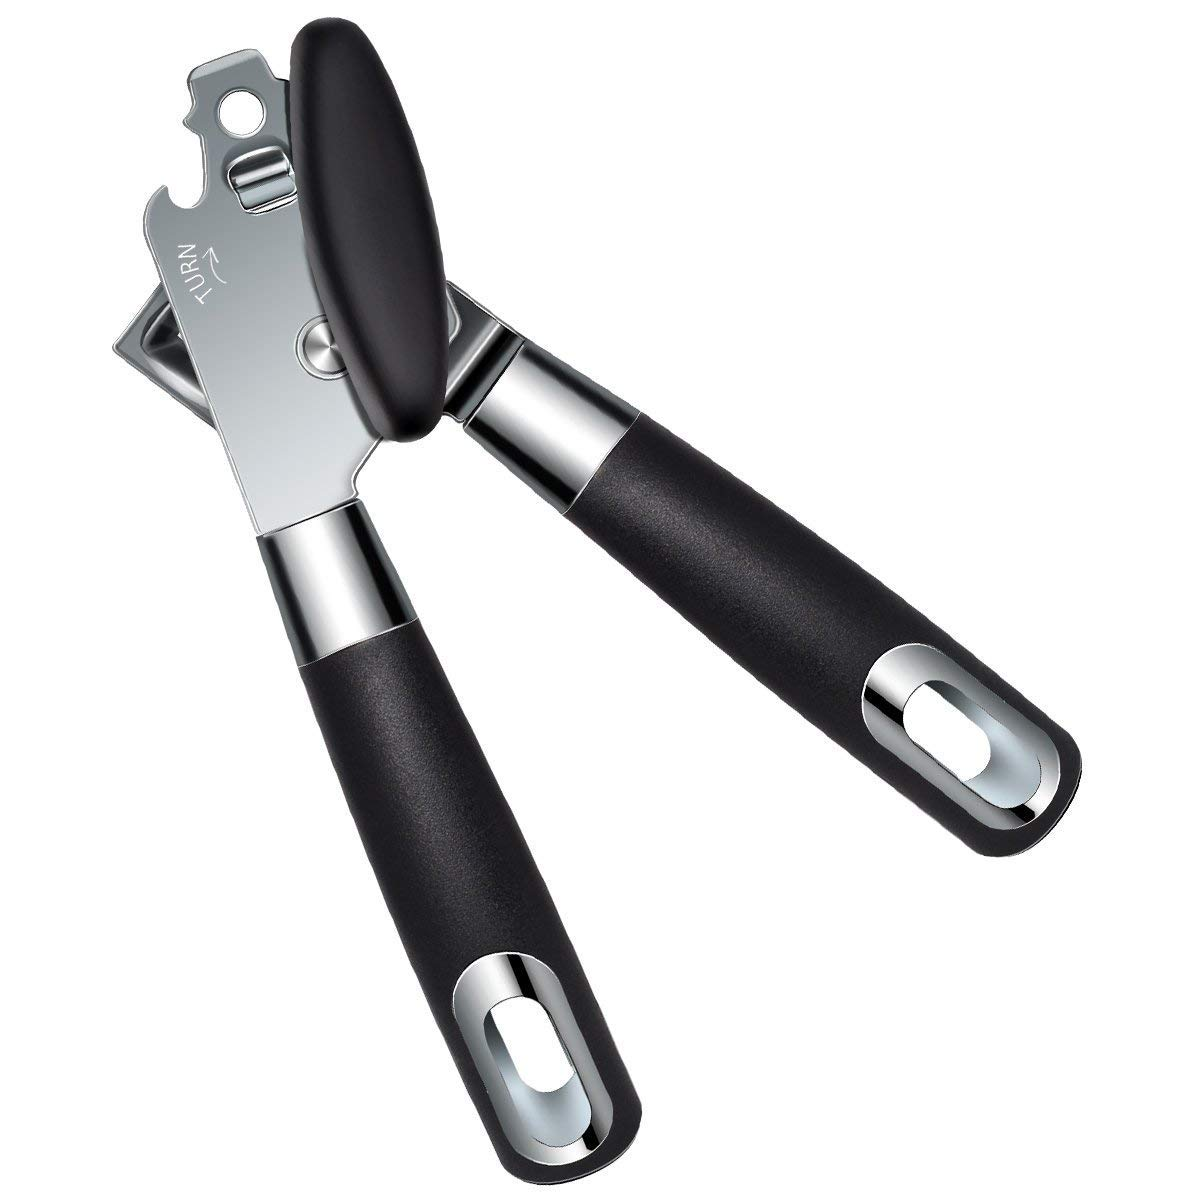 Hand Held Safety Manual Can Opener,3-in-1 Built in Tin&Jar Opener with Sharp Stainless Steel Sooth Cutting Edge Heavy Duty and Ergonomic Handle Easy to Use for Seniors